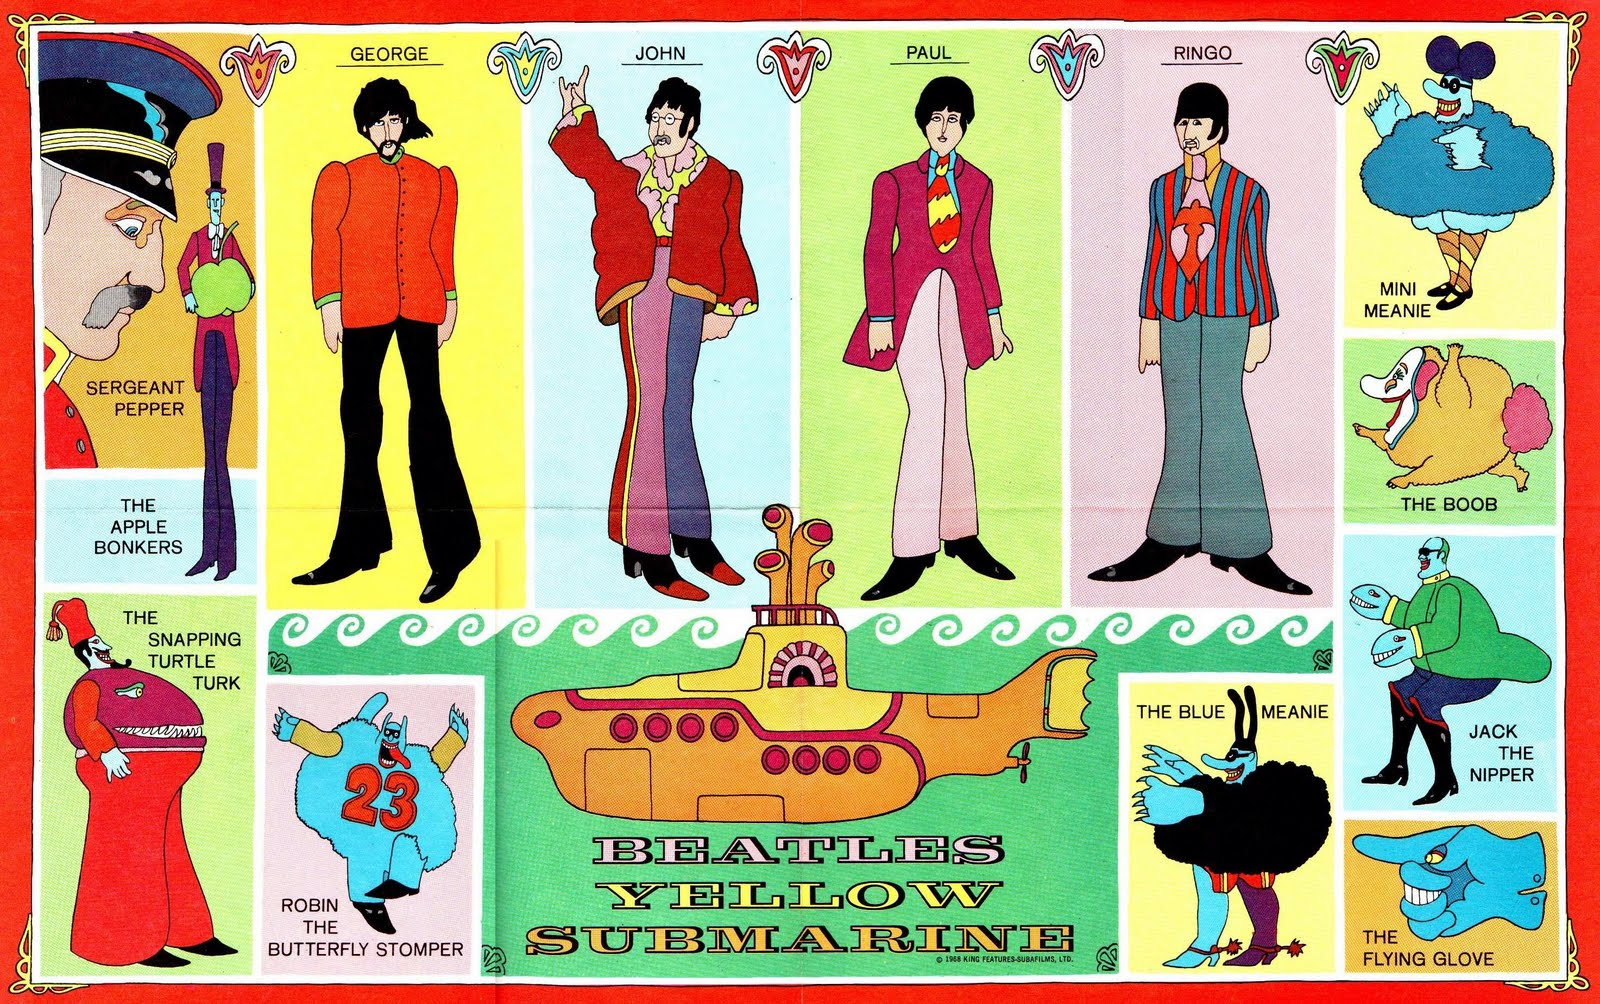 THE BEATLES YELLOW SUBMARINE SEALED APPLE RECORDS PCS 7070 ...